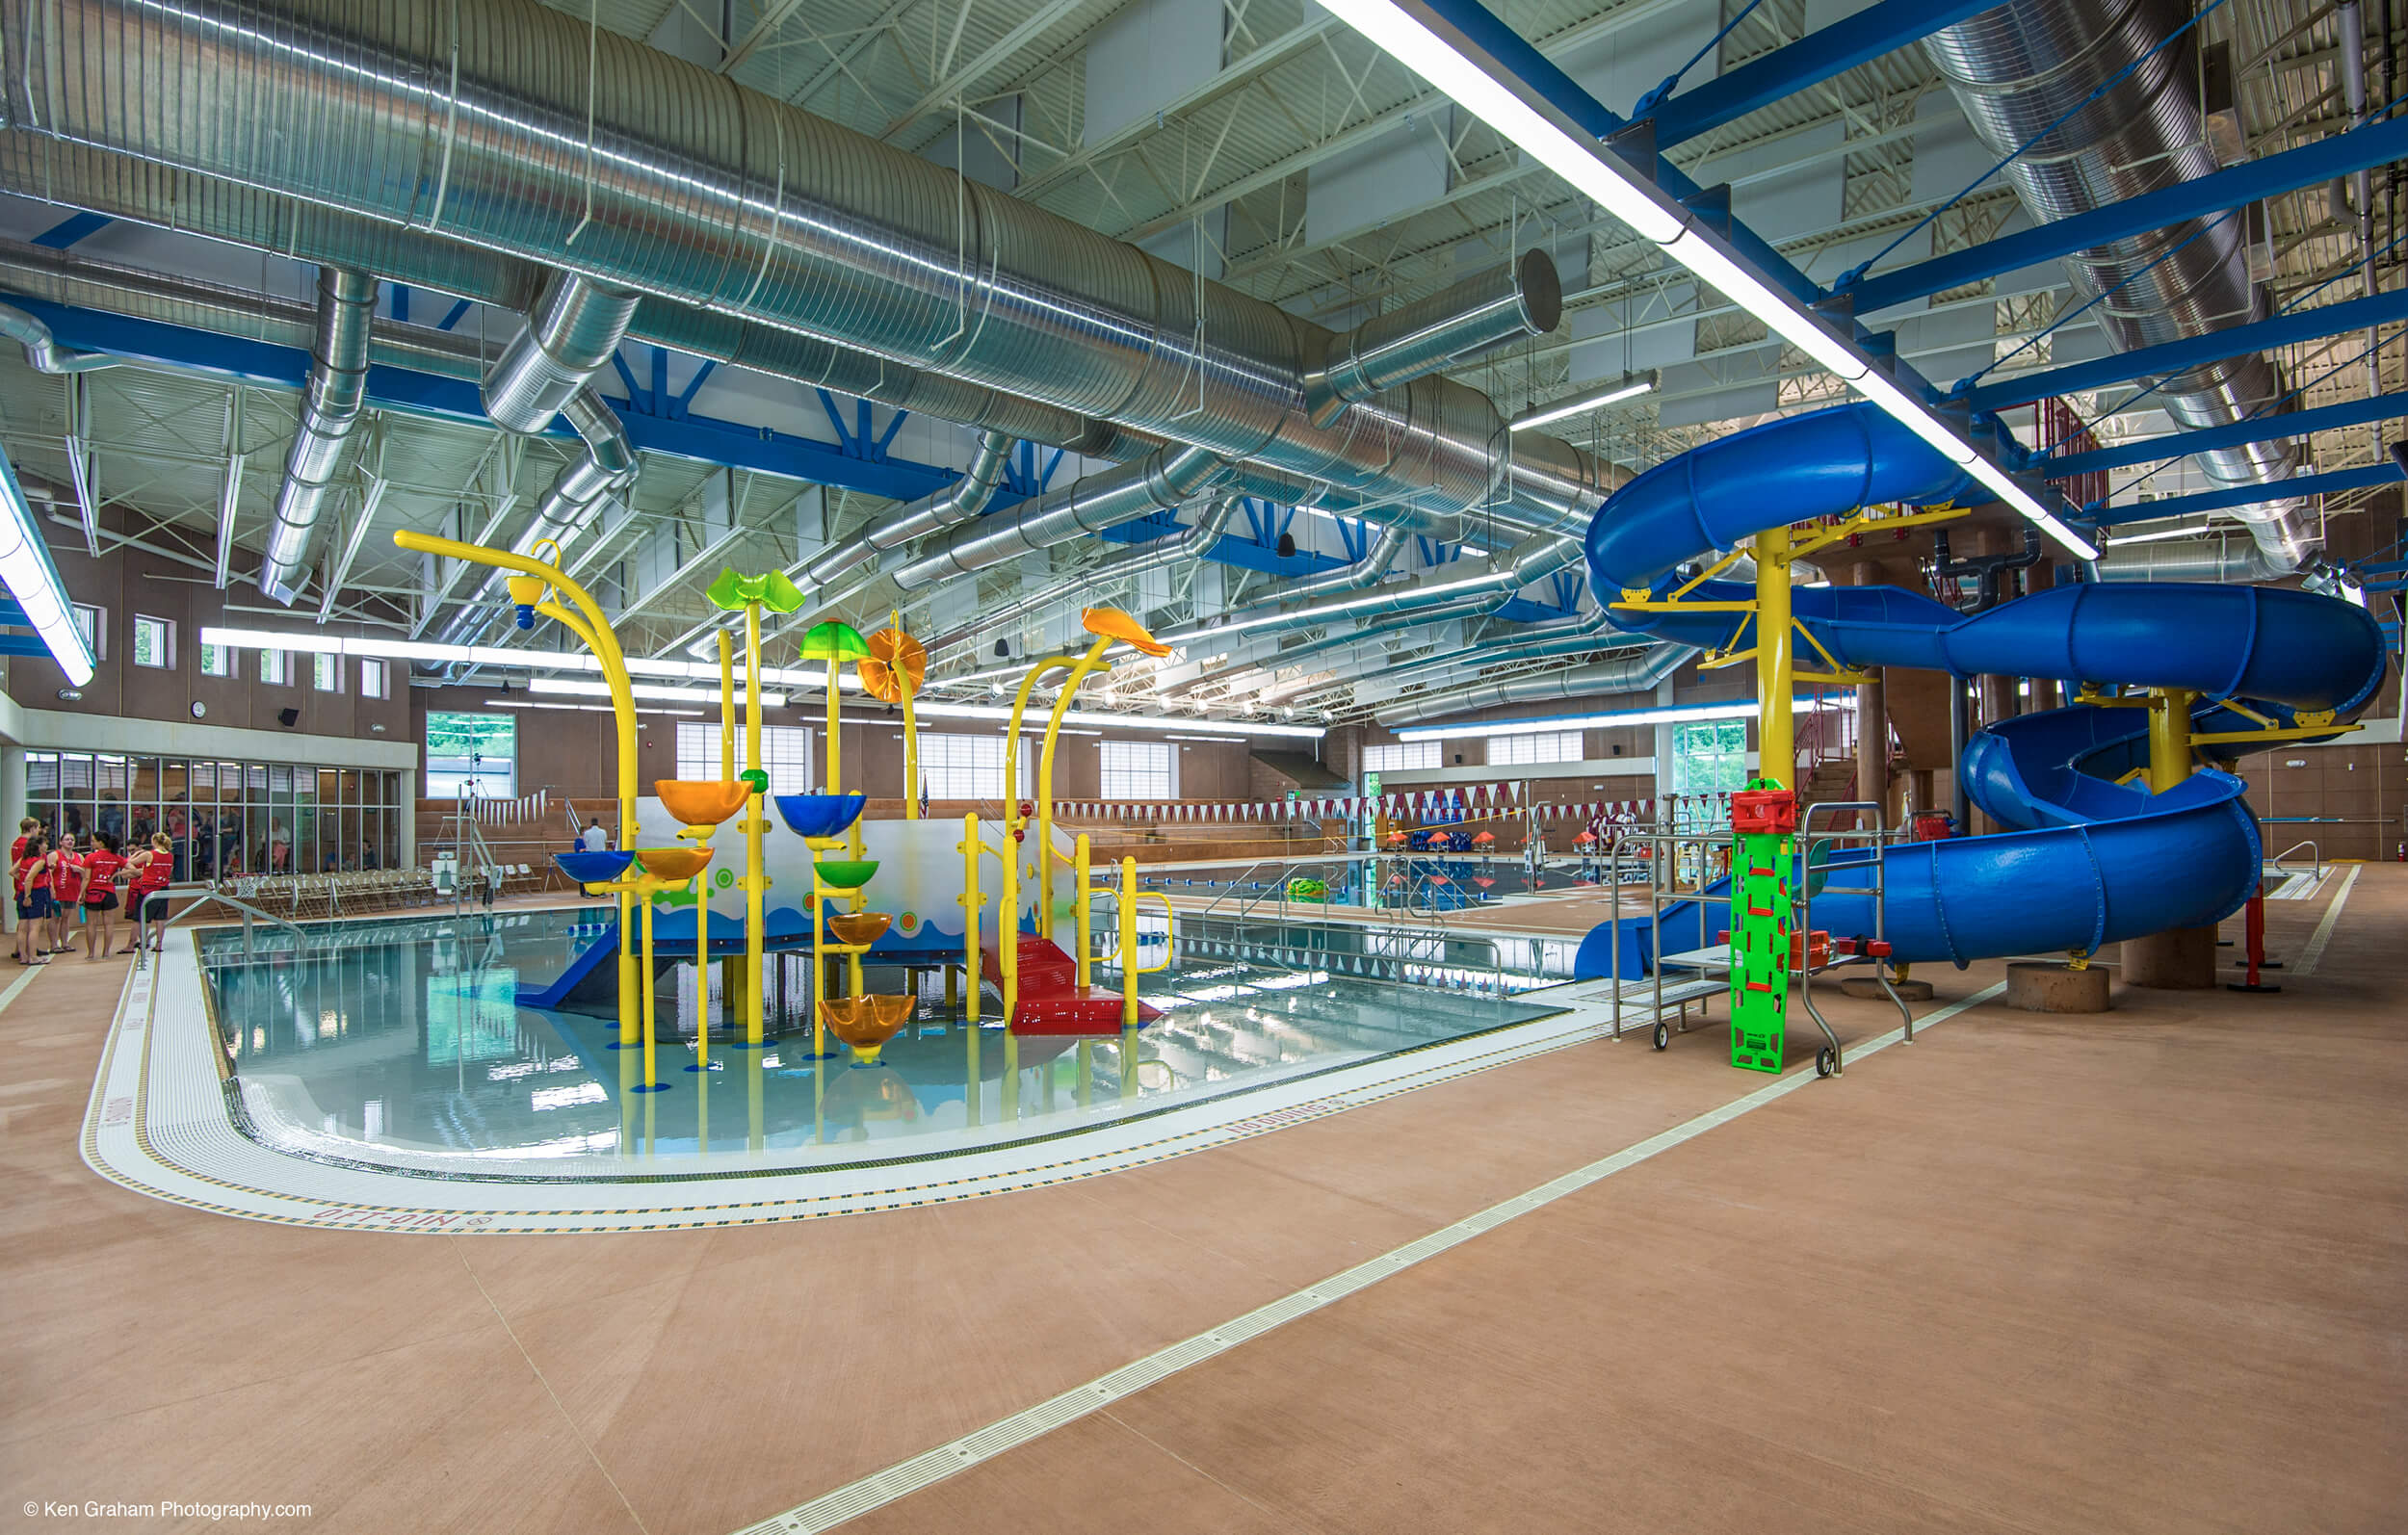 Ketchikan Aquatic Center Water SLides